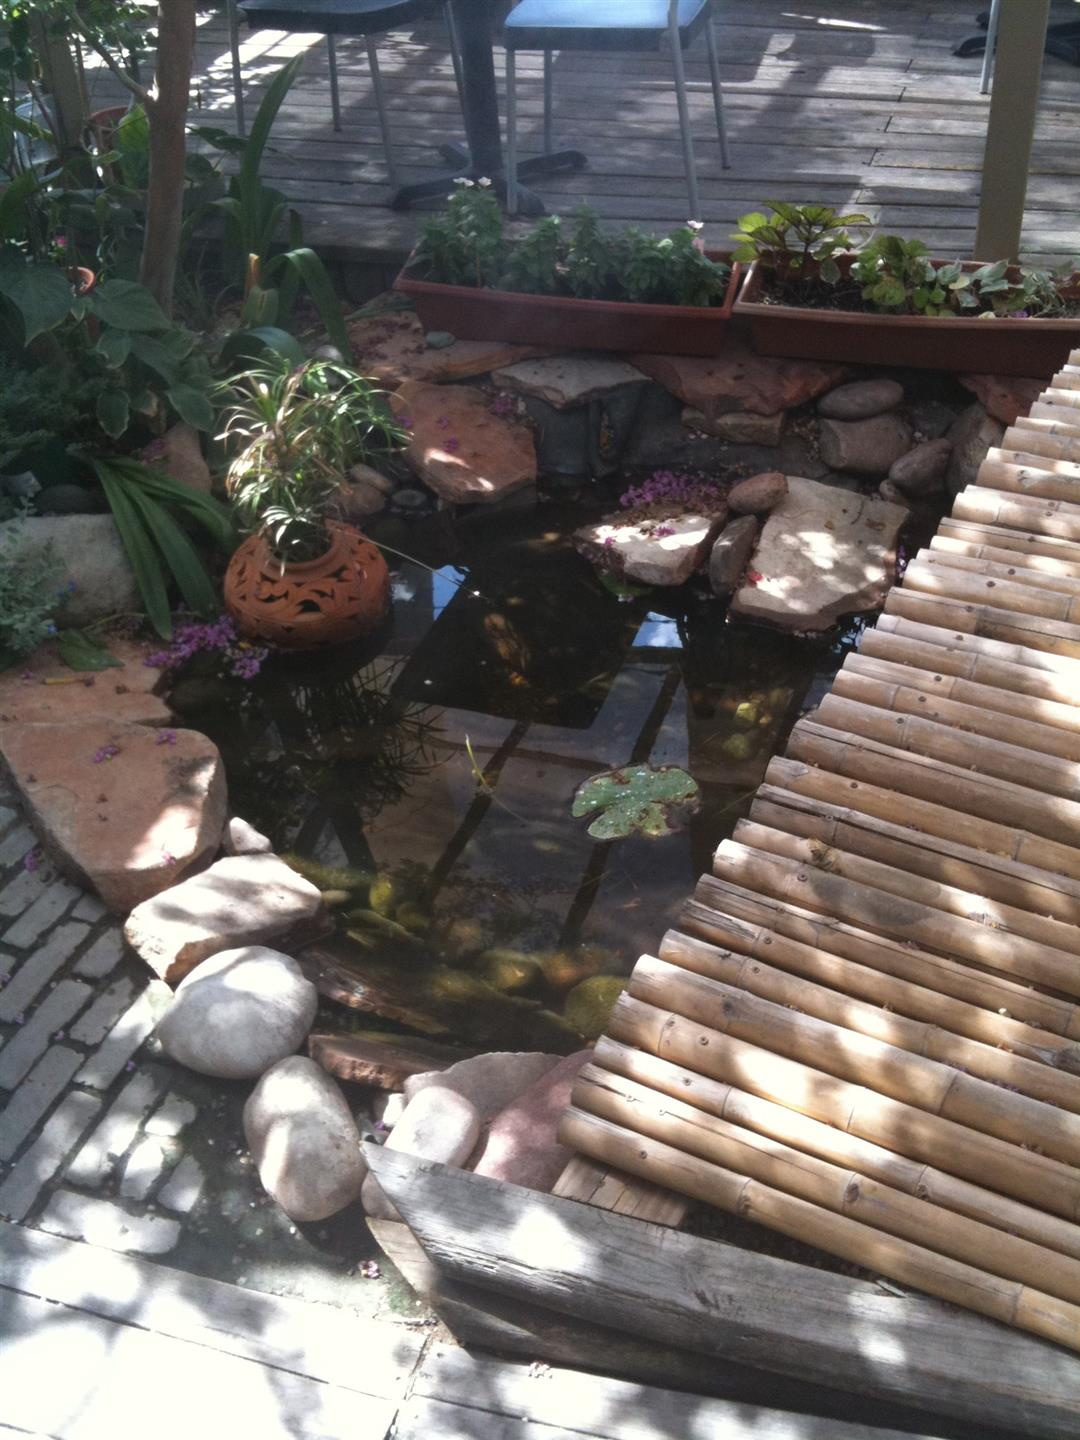 Outdoor deck with small pond next to bamboo bridge